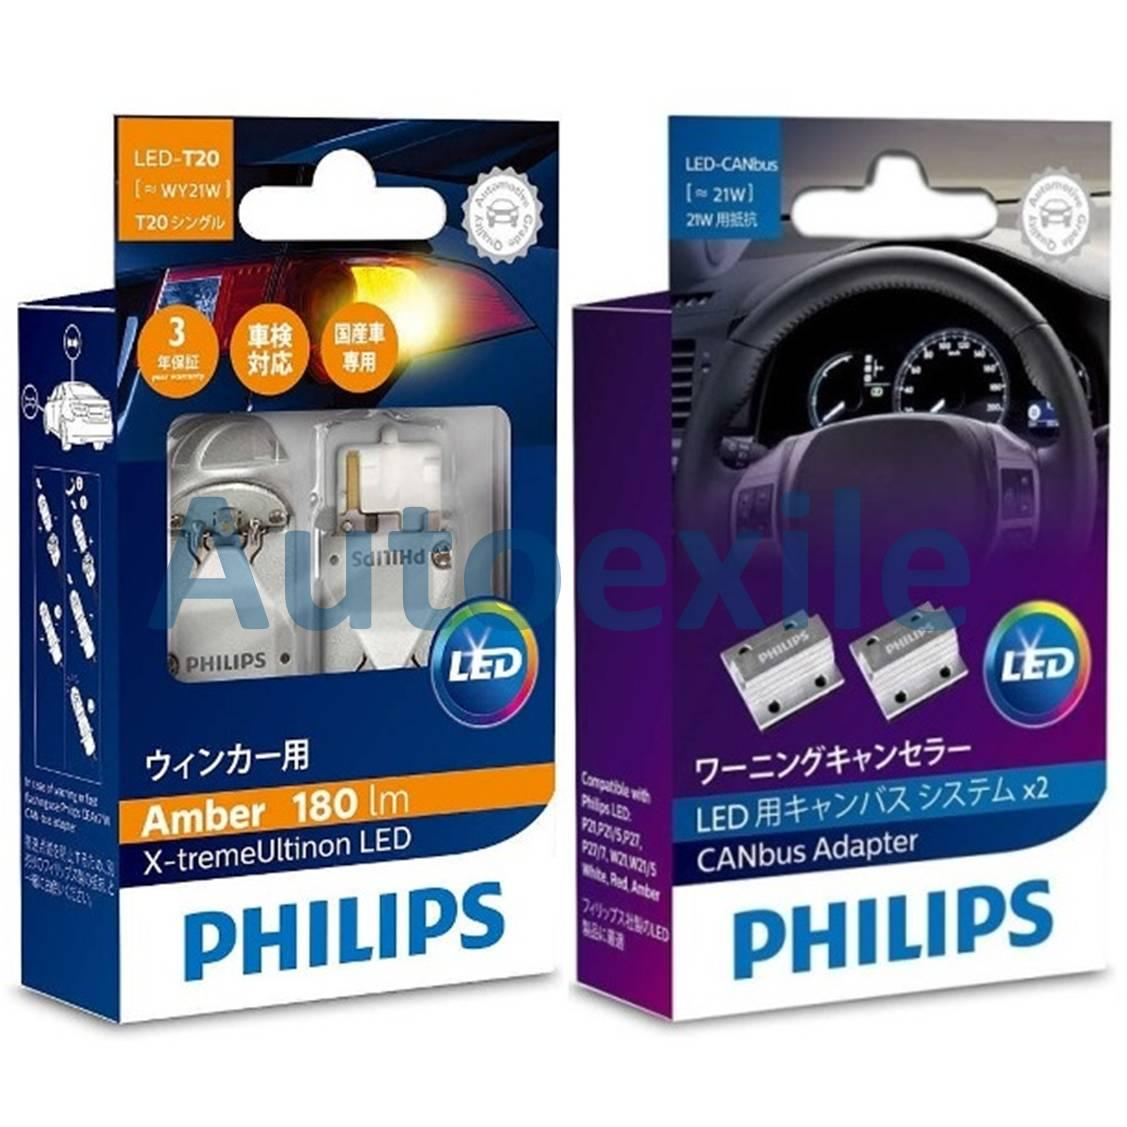 Philips Xtreme Ultinon LED T20 WY21W WY21 12V Jingga free CANbus 21W Kedip Normal Fix Error Lampu Sein Amber Mobil